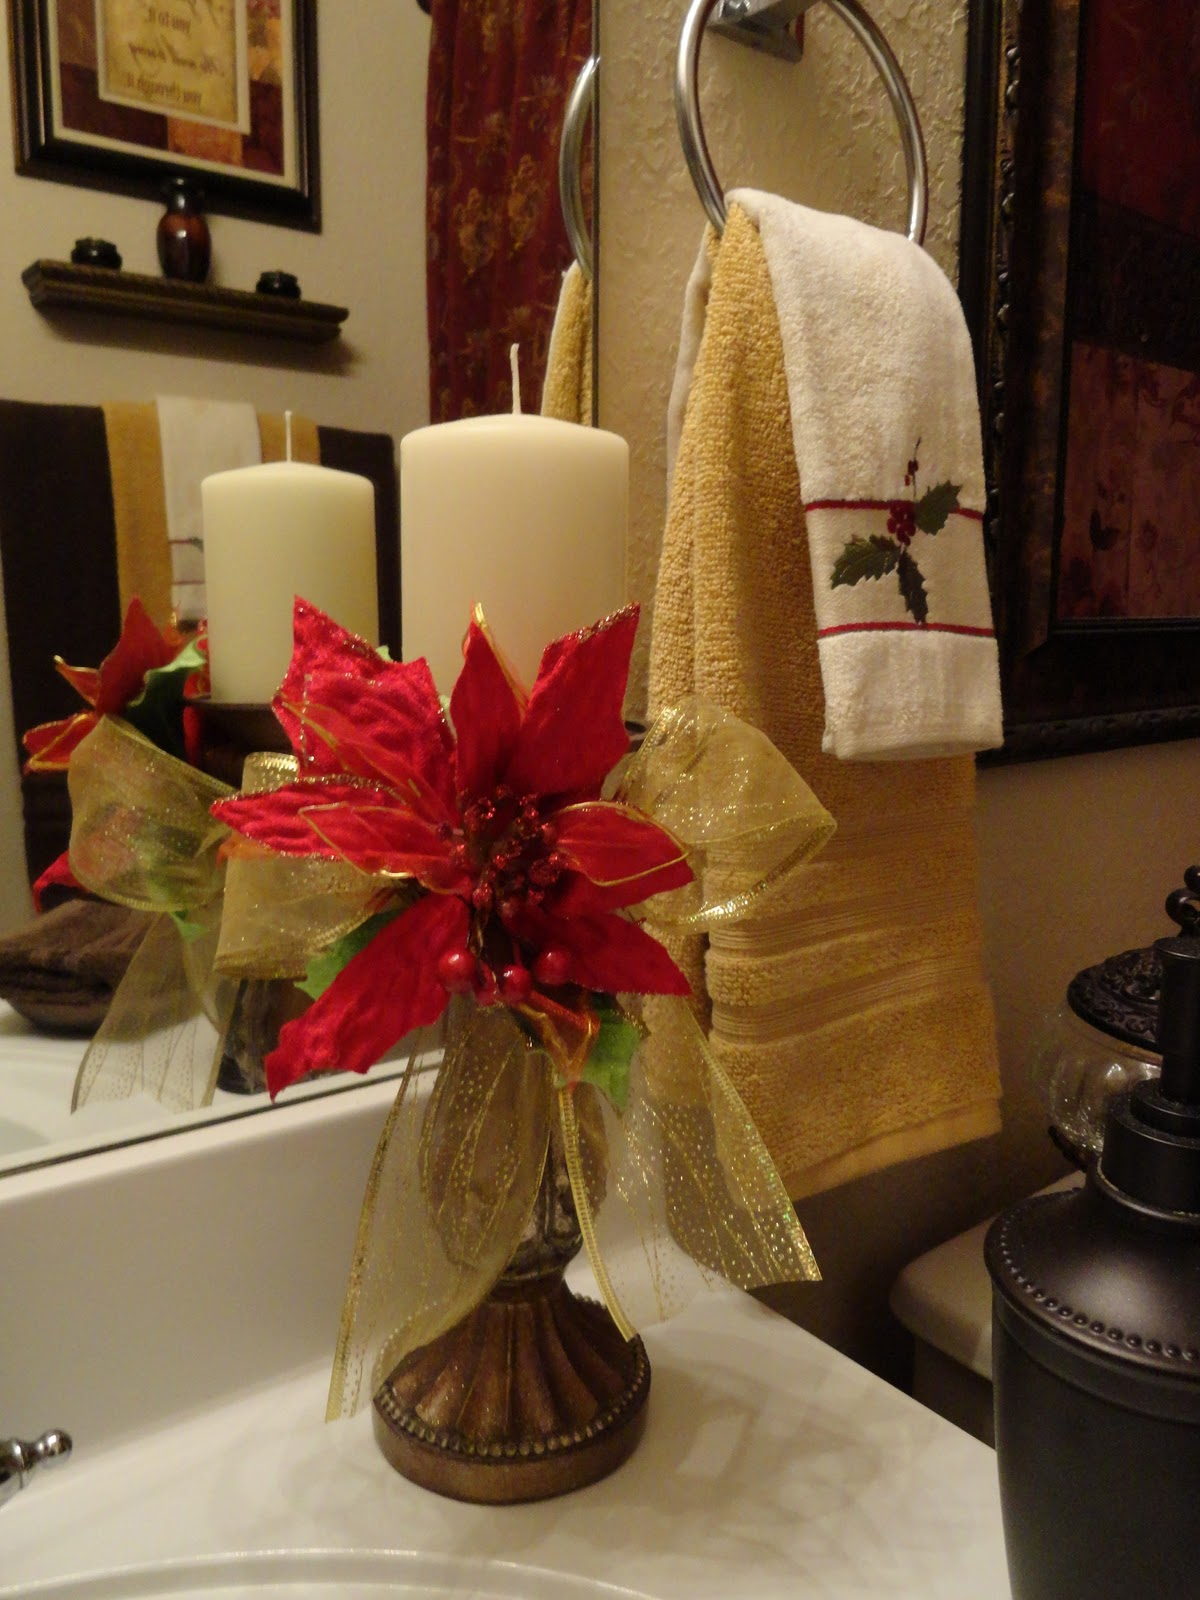 Our home away from home a touch of christmas in the guest for Bathroom christmas decorations ideas